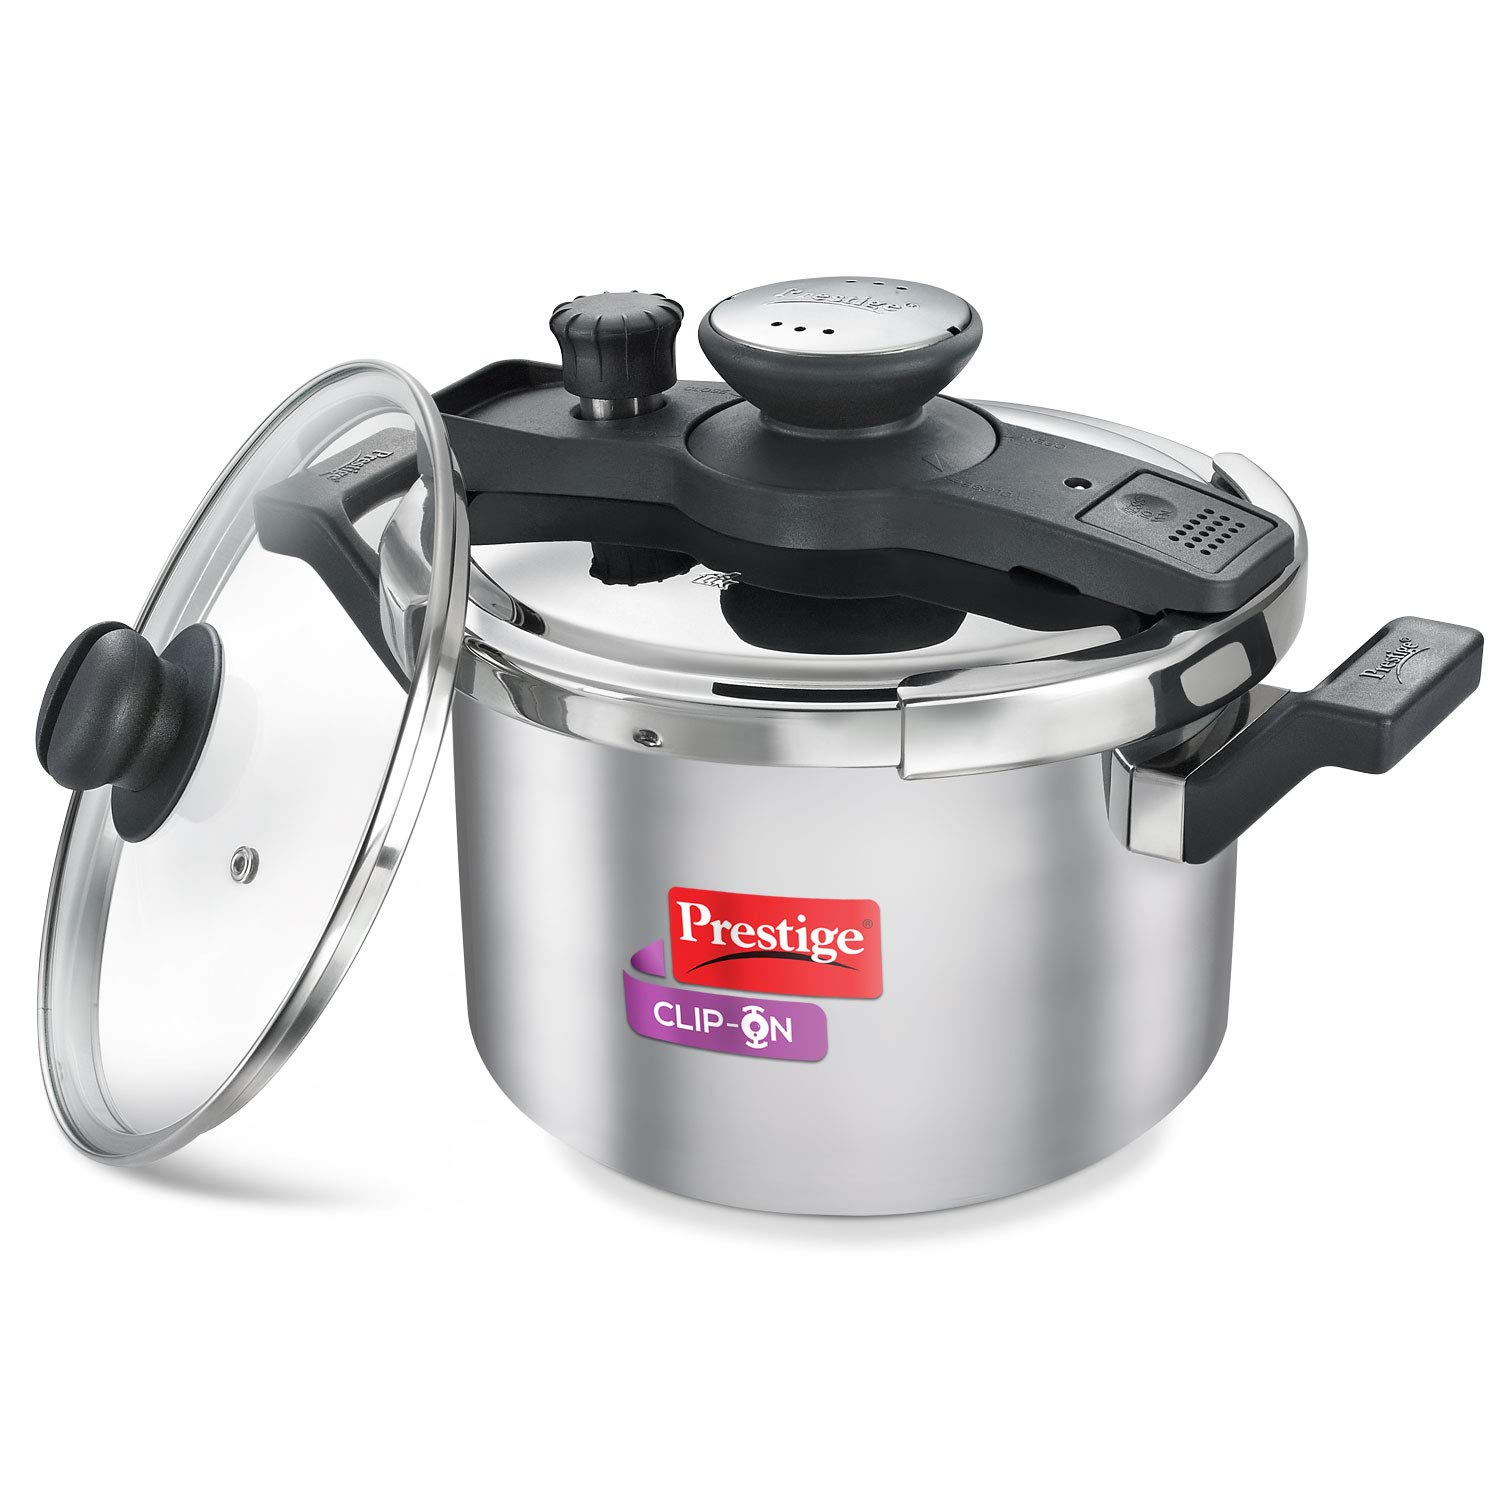 Prestige Clip-On Stainless Steel Pressure Cooker, Cook and Serve Pot with Extra Glass Lid, Large 5 Liters